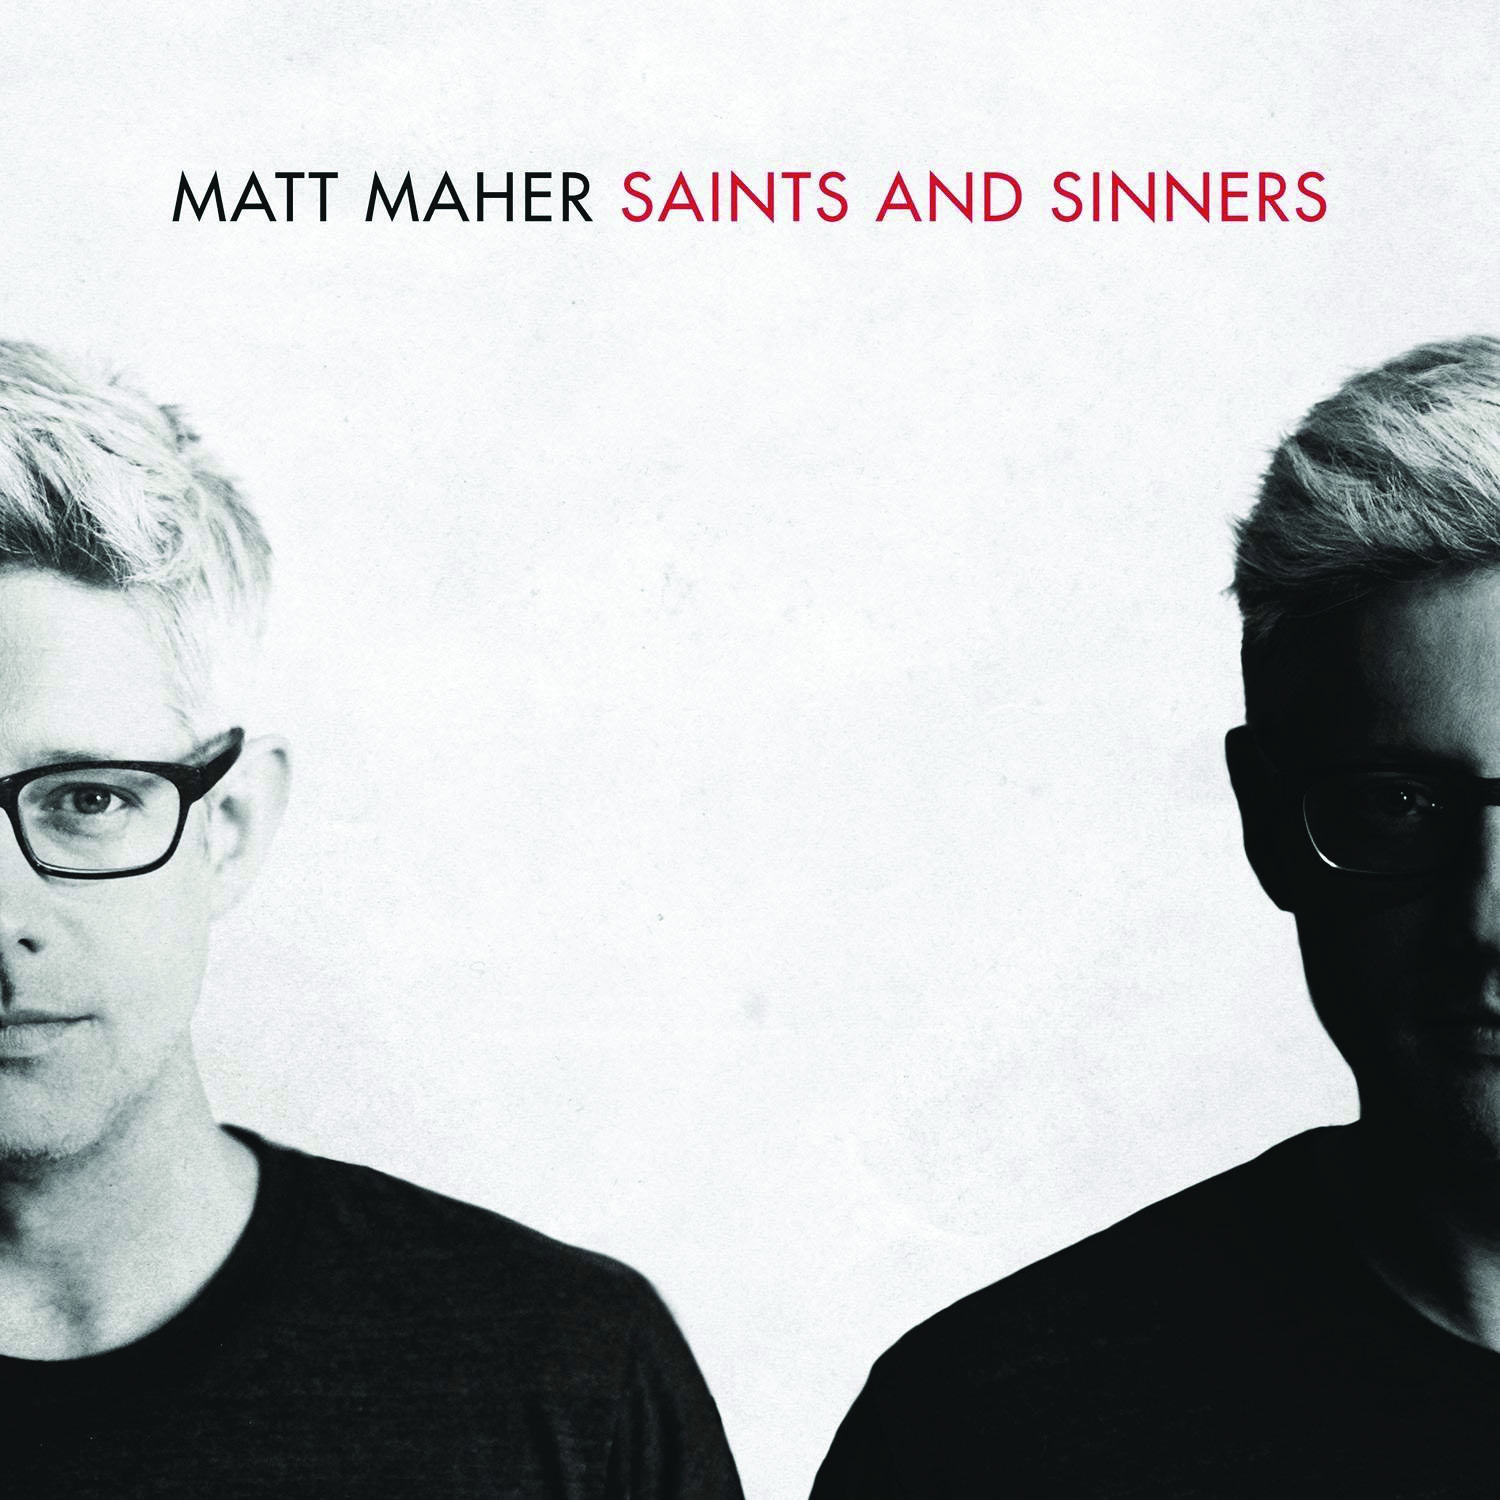 Matt Maher Saints and Sinners